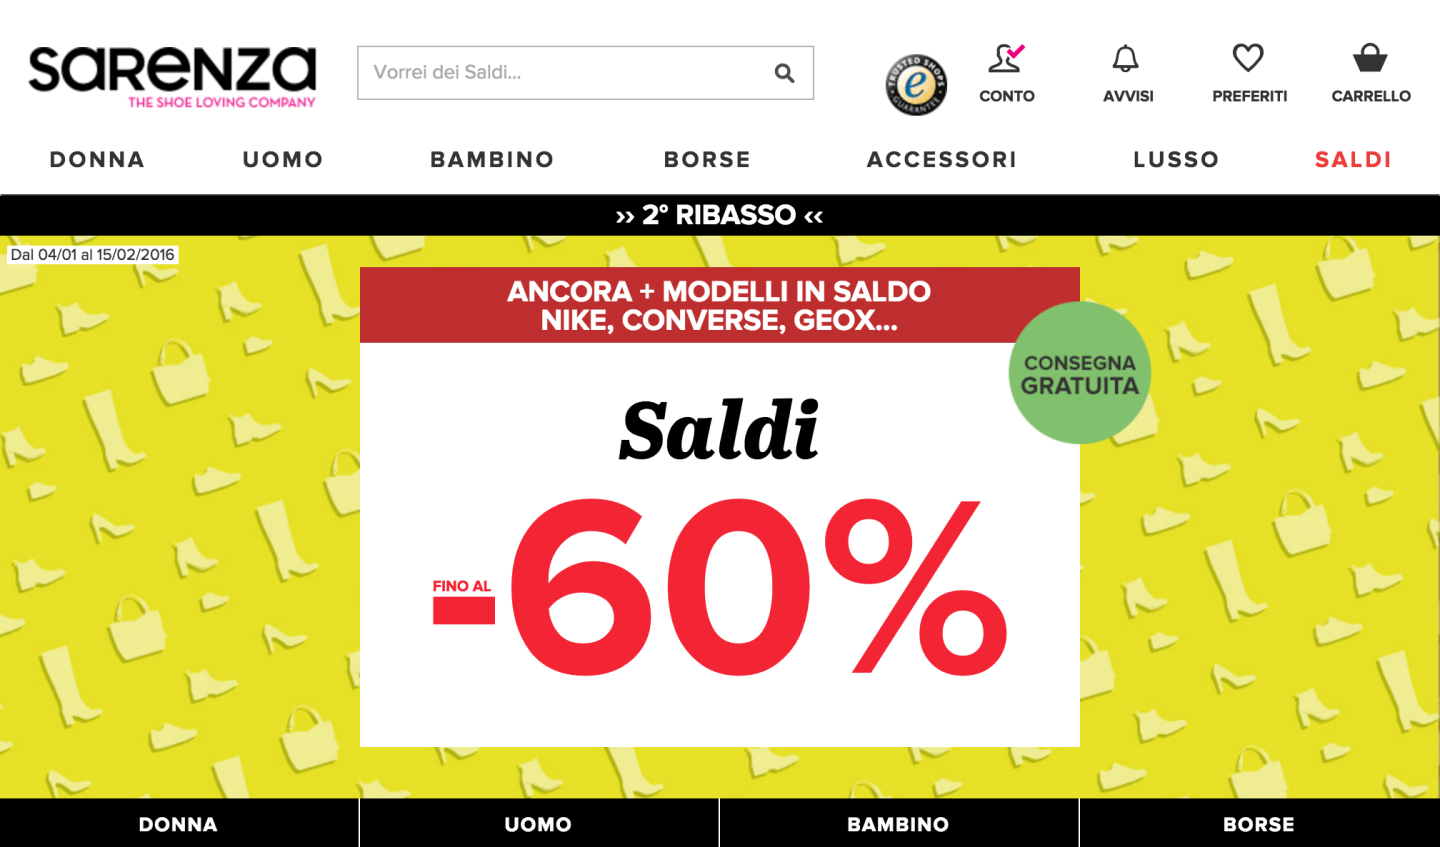 Online-shopping-sarenza-modi-di-uso-acquisti-in-sicurezza-valentina-coco-fashion-blogger